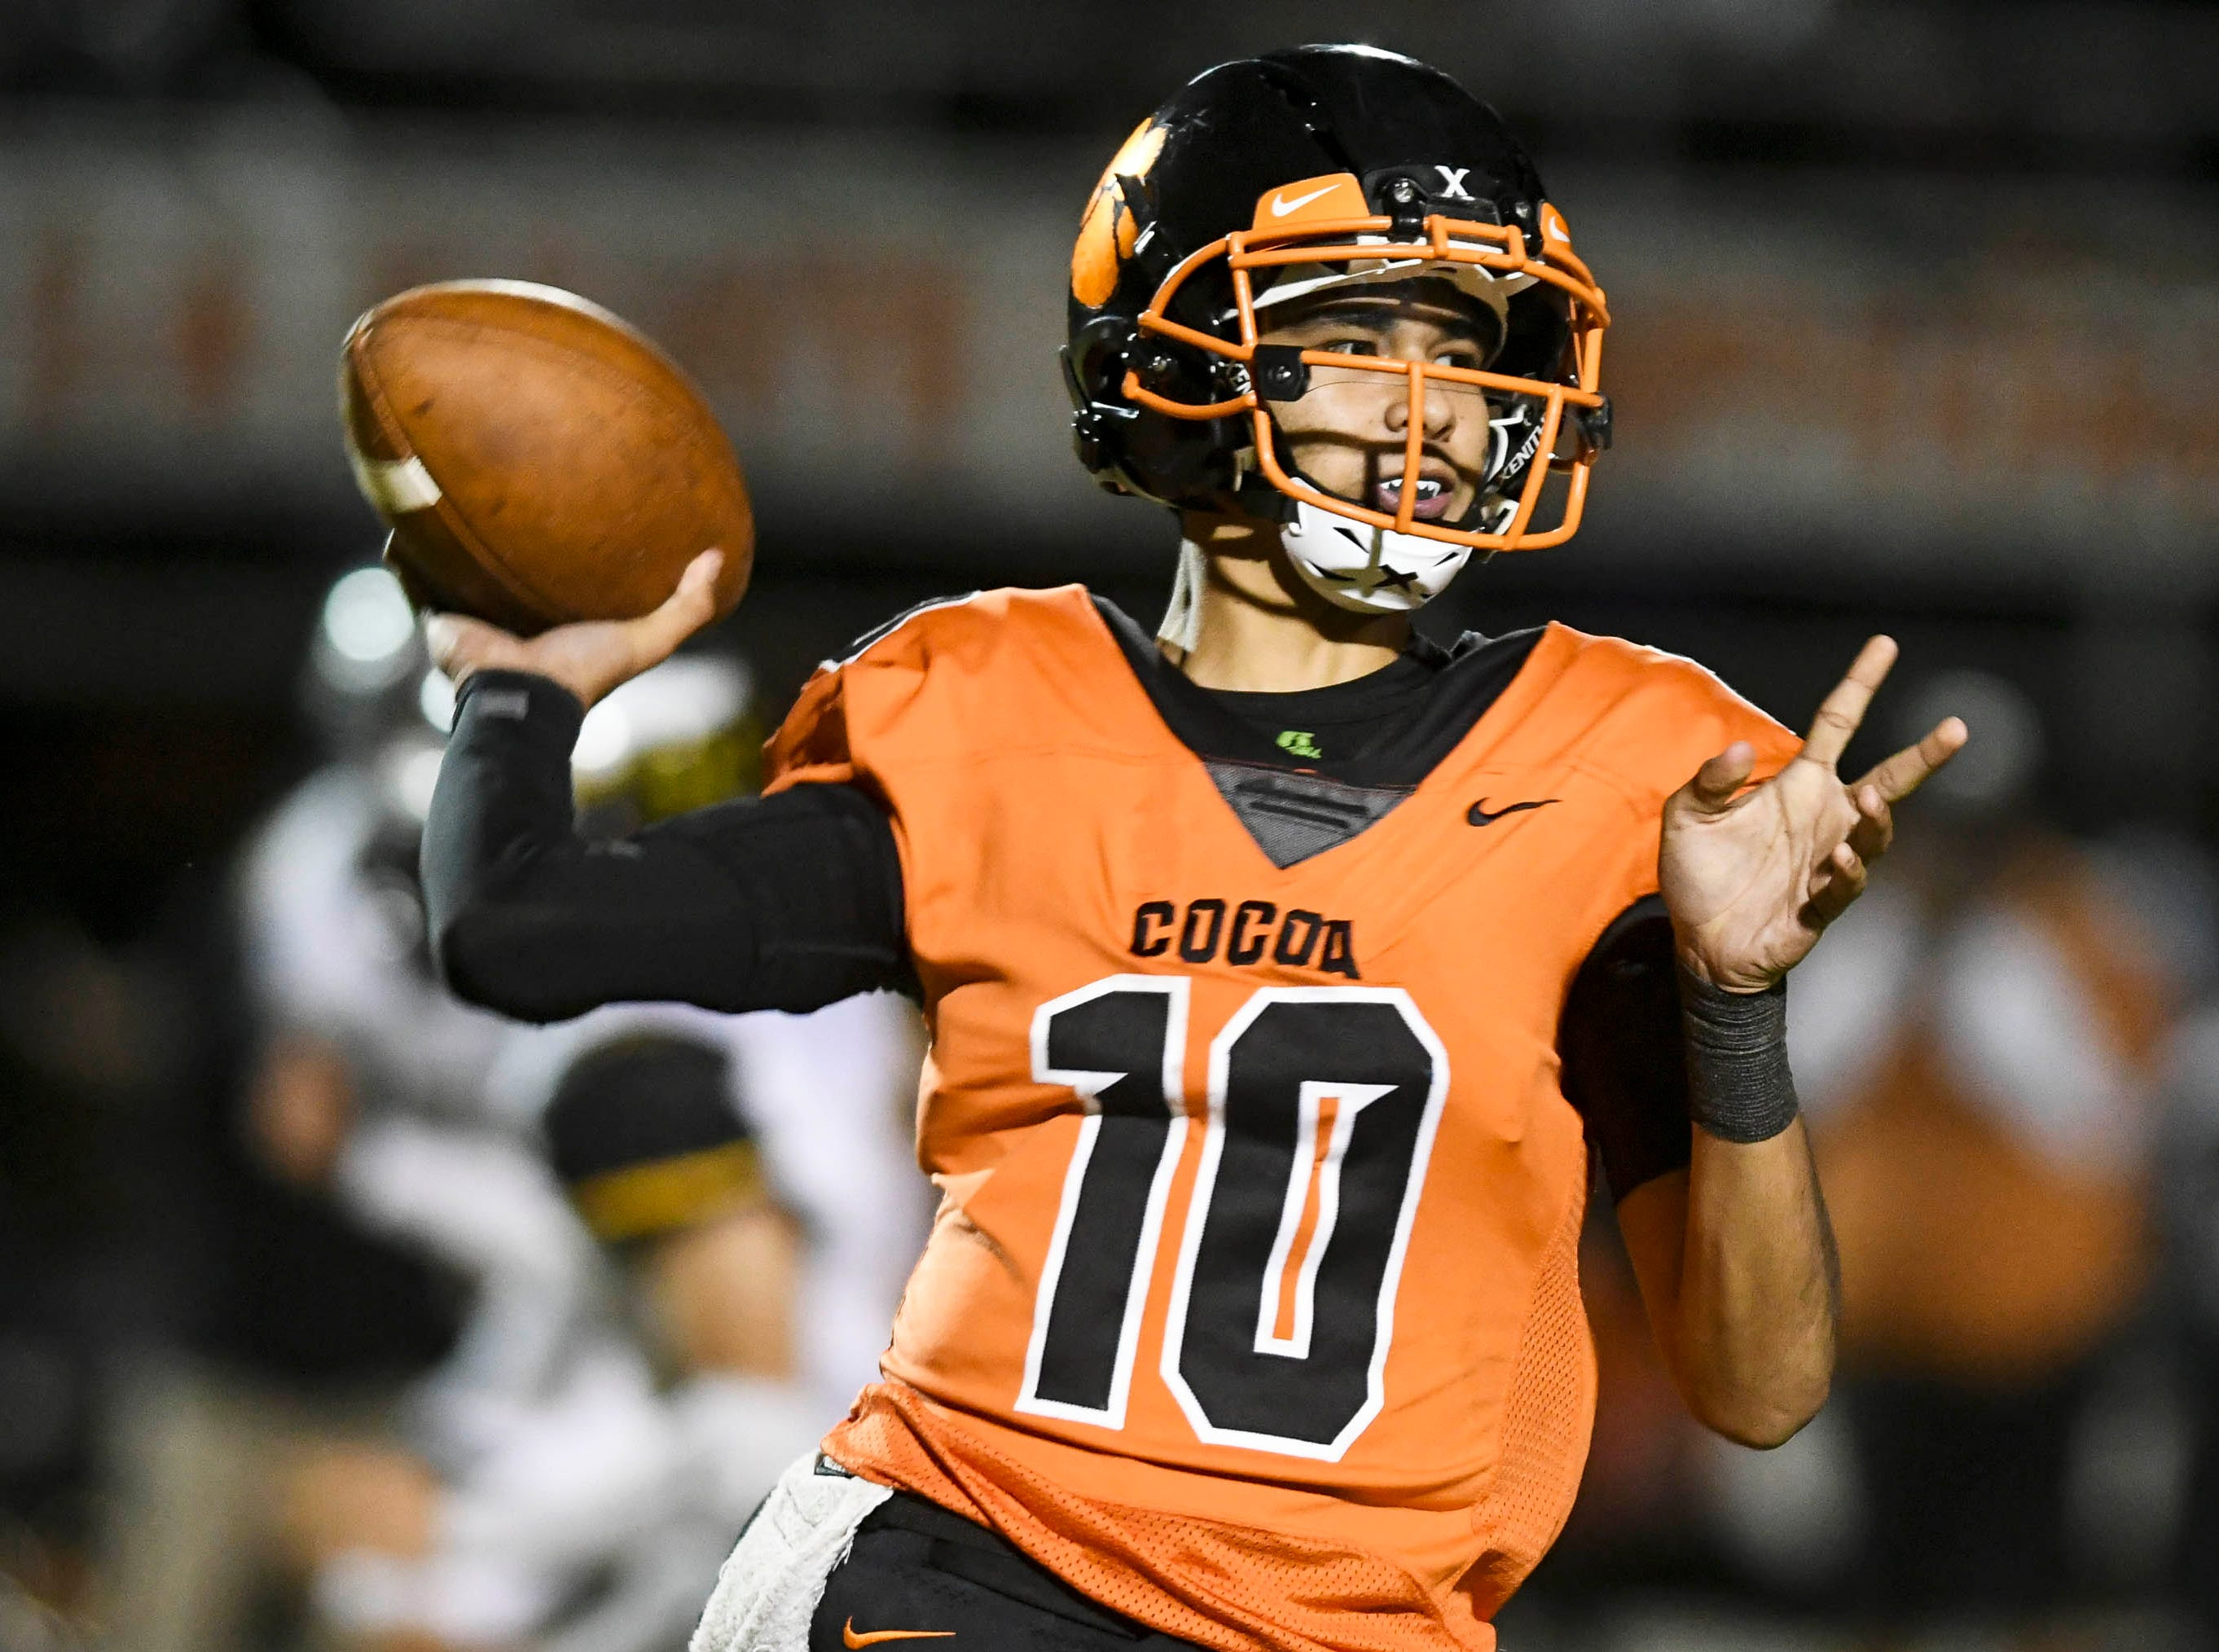 Cocoa QB Diego Arroyo passes the ball during Friday's game.